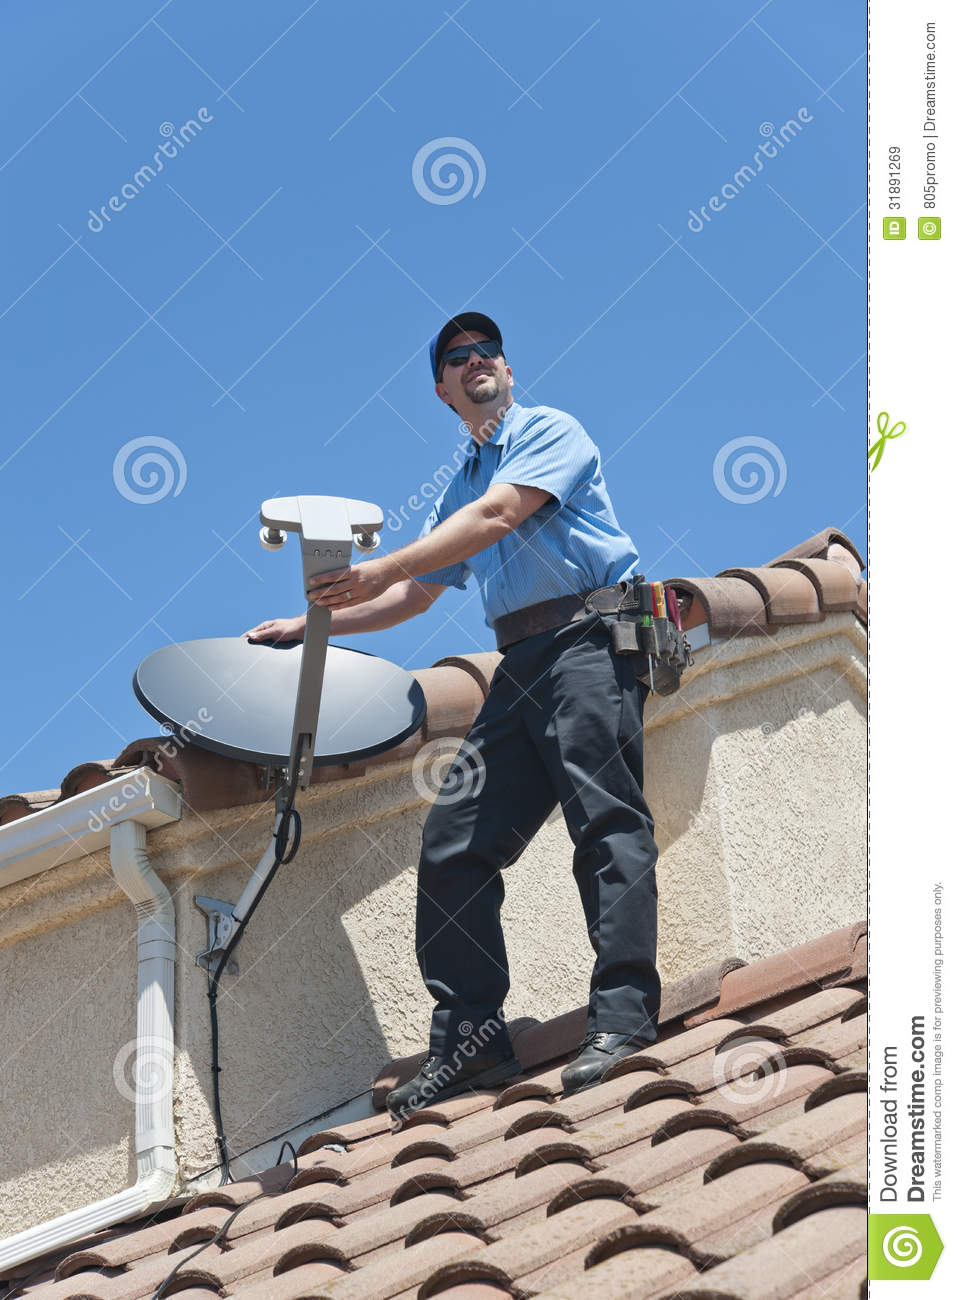 dish network technician